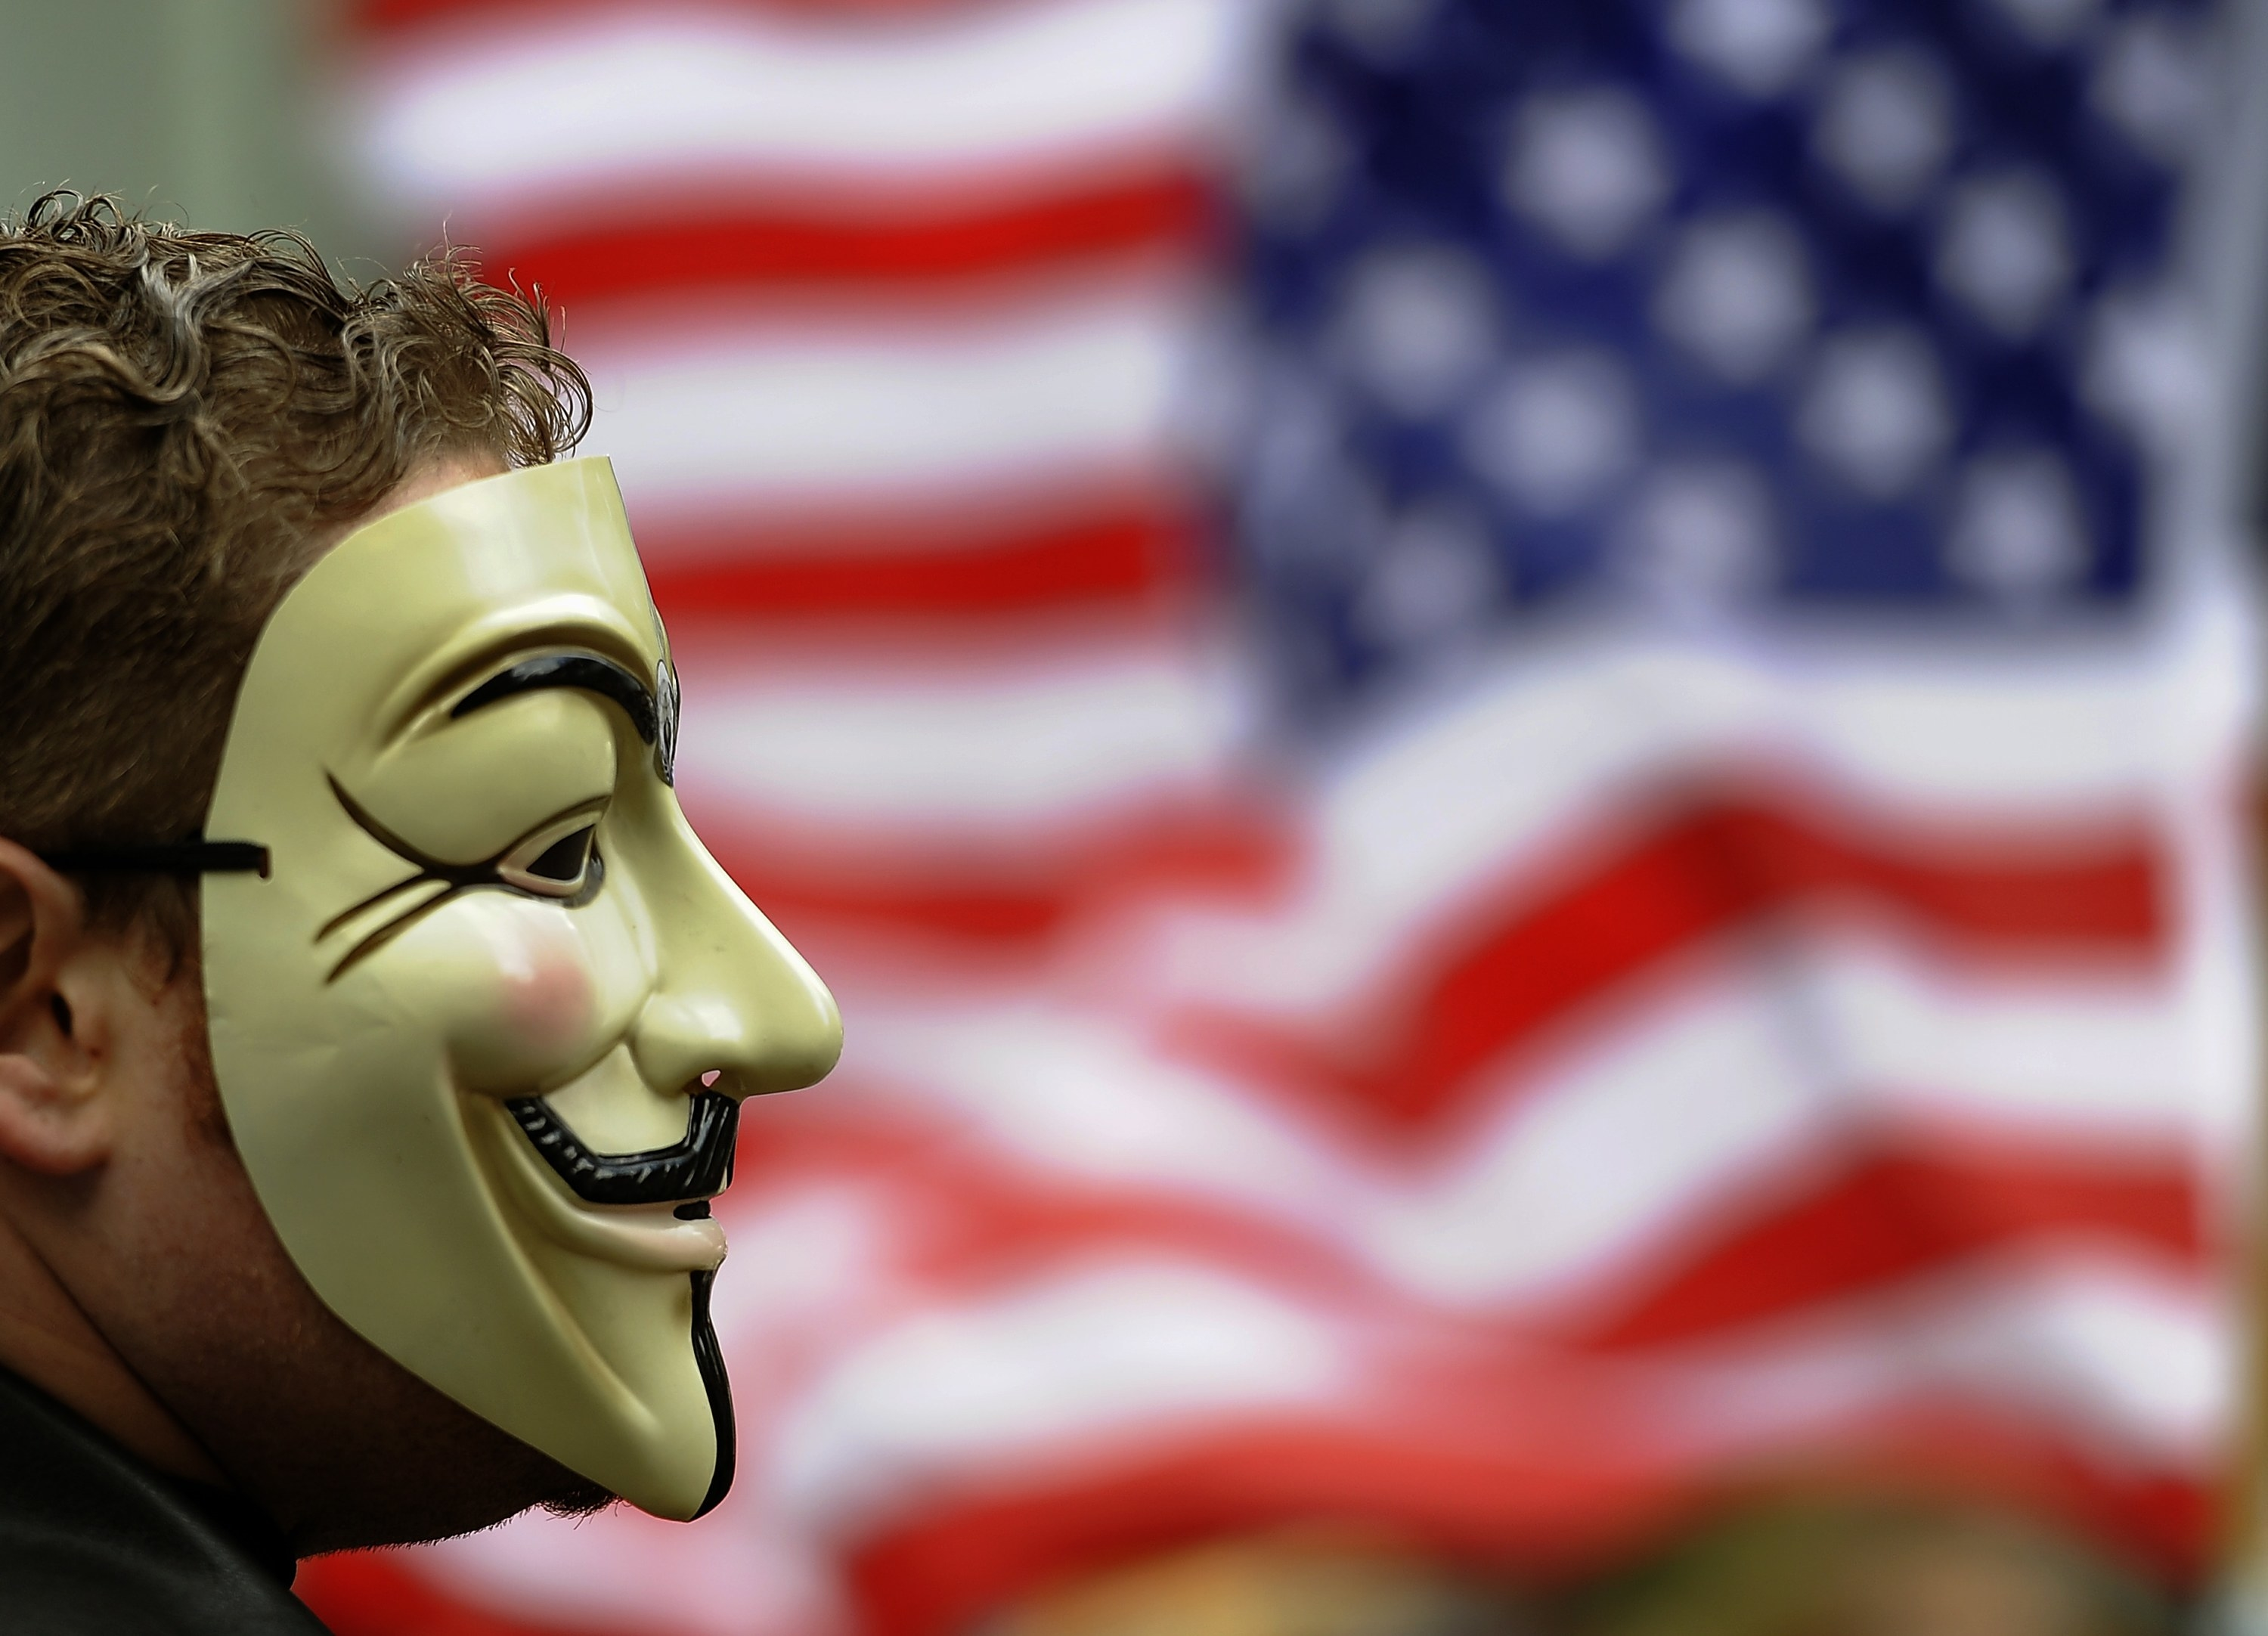 A masked protester in front of a flag during Occupy Wall Street